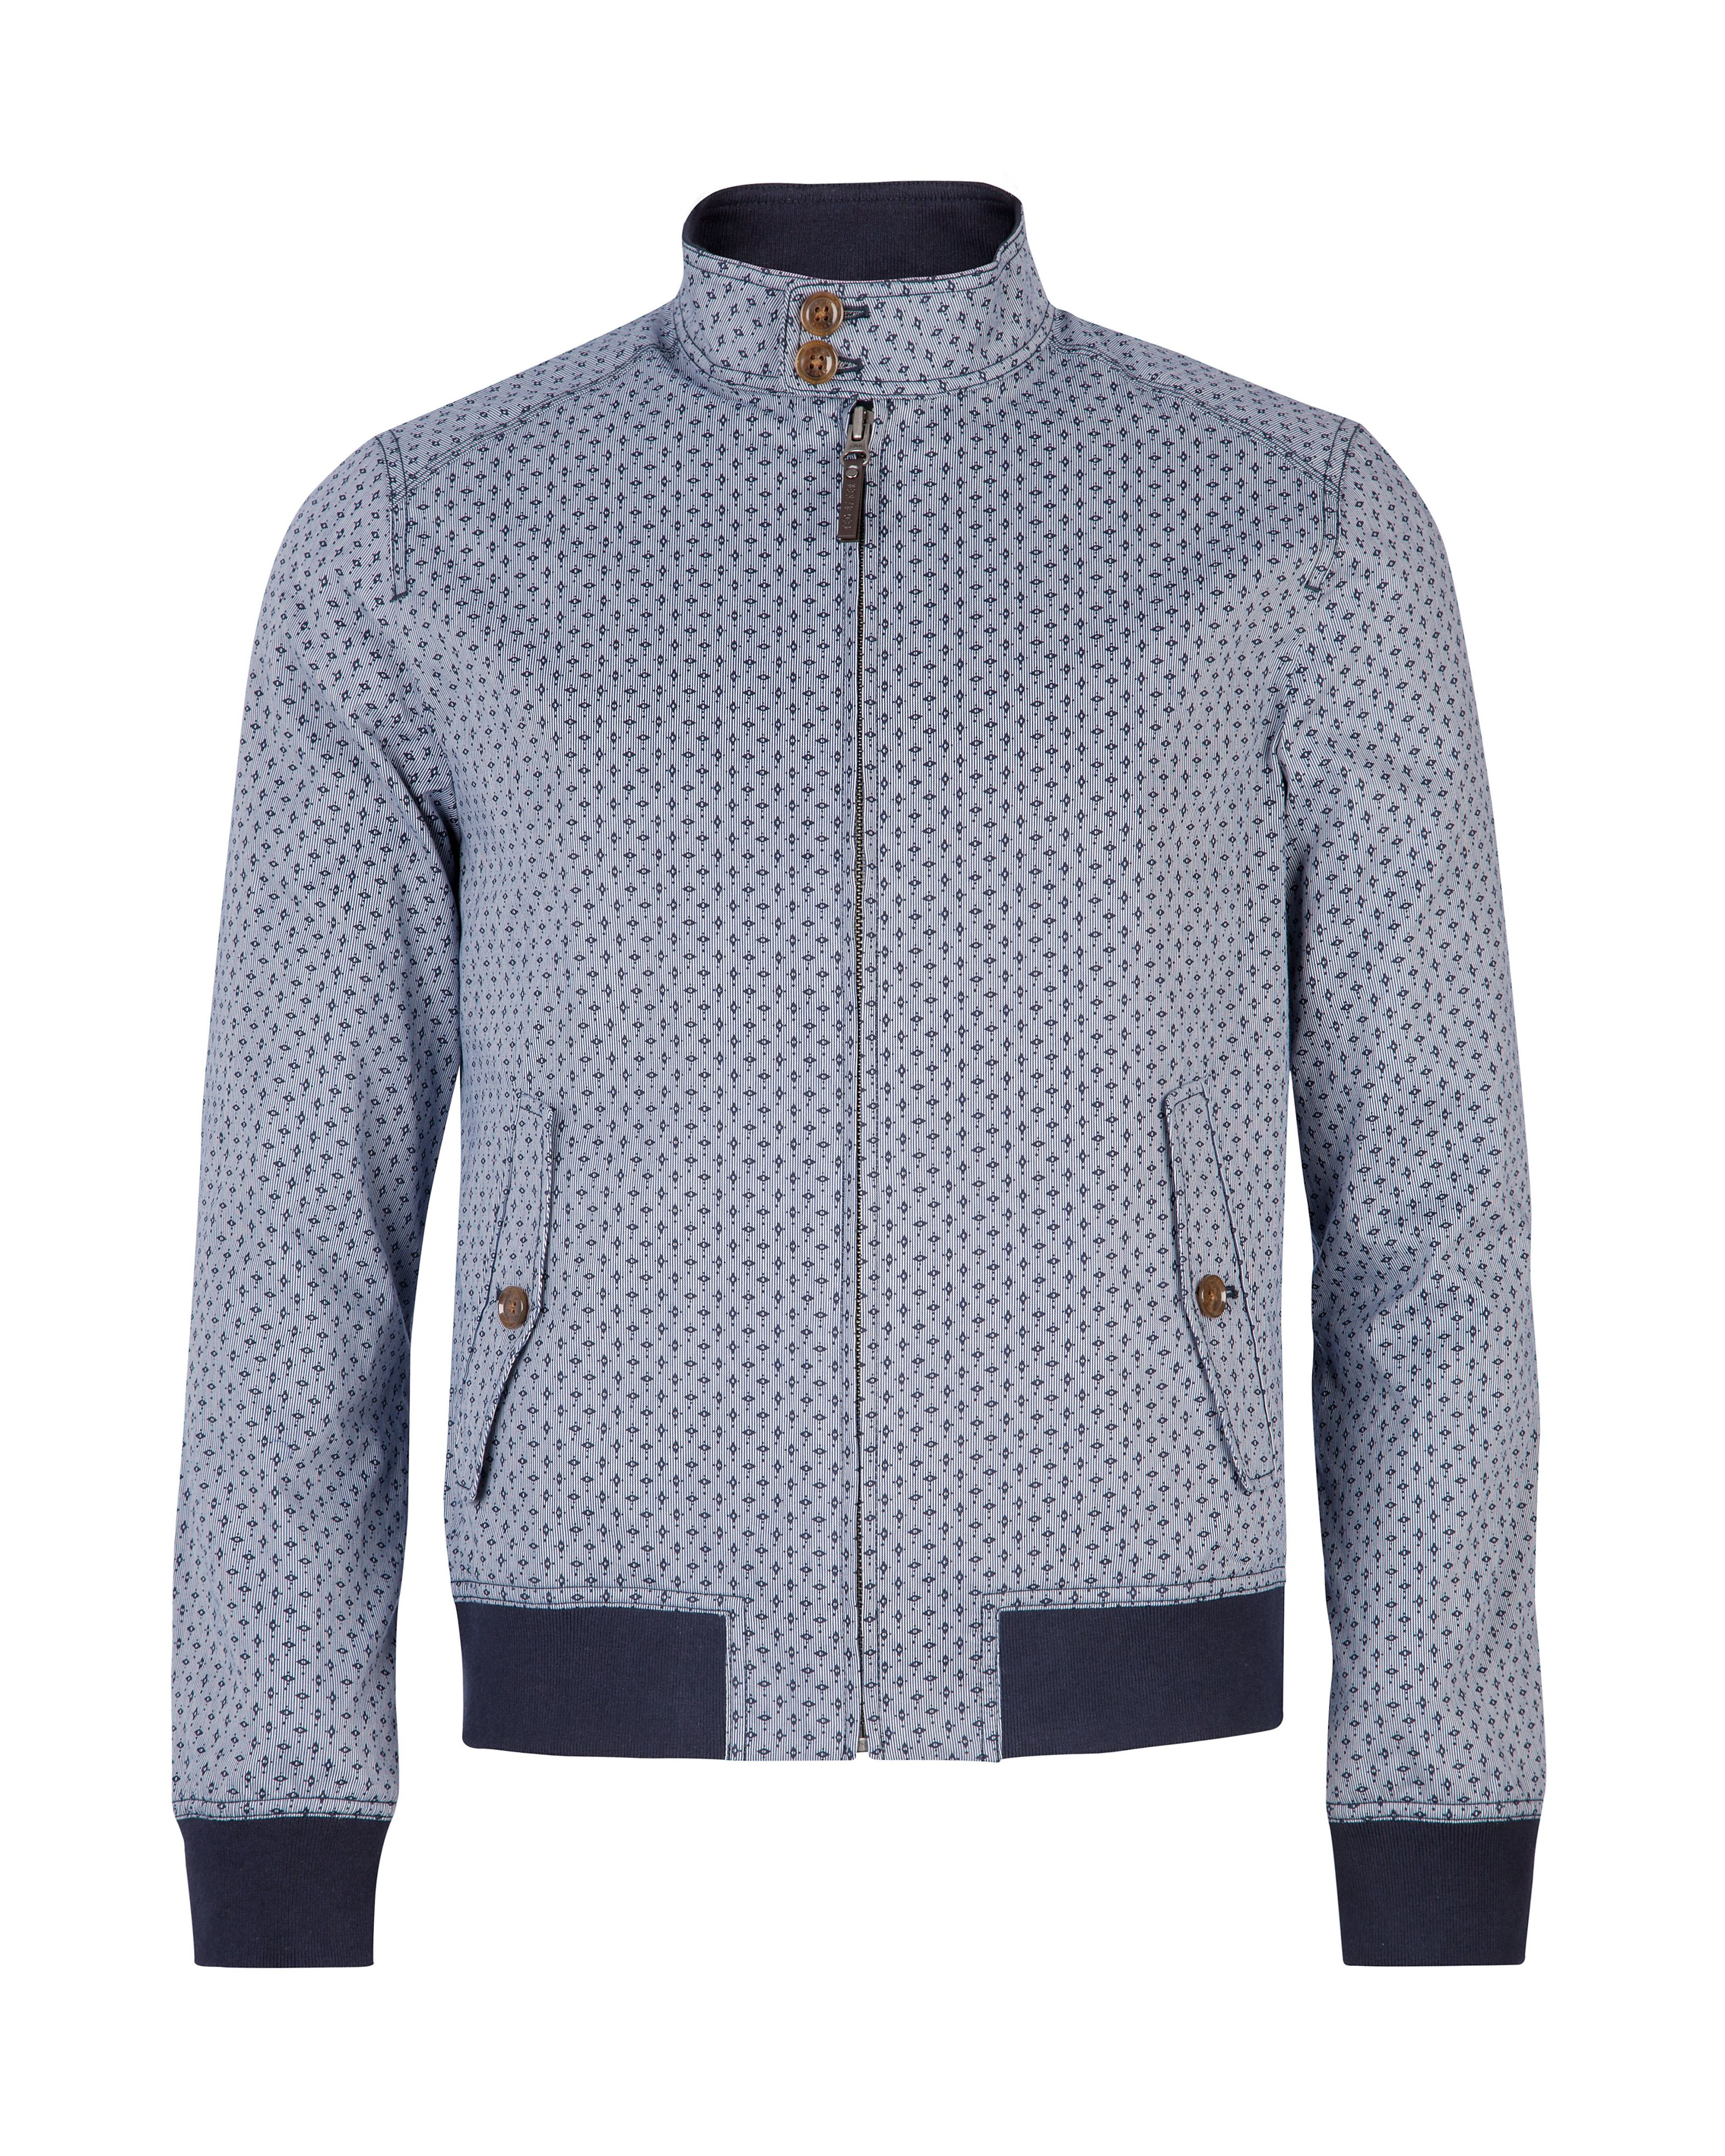 Lorrien bomber jacket